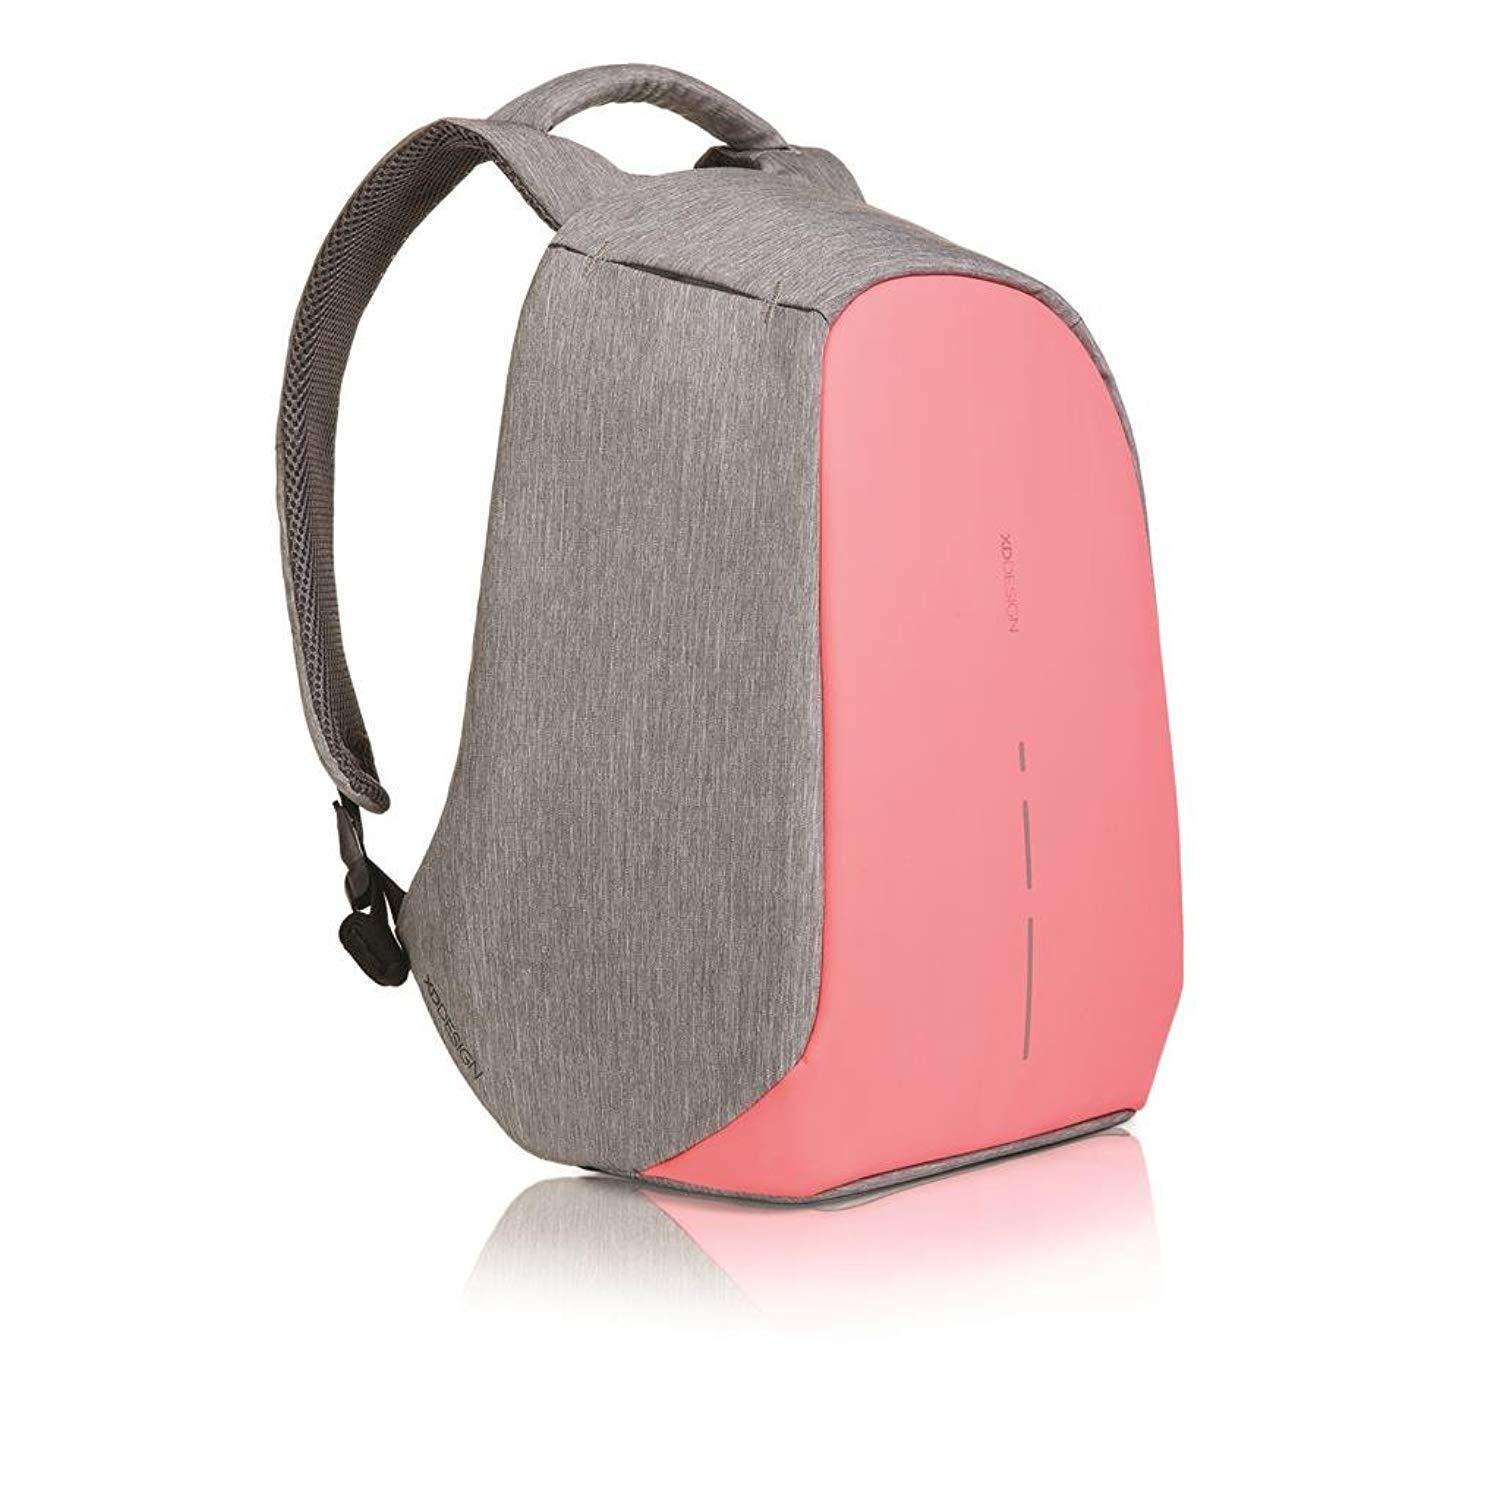 XD Design Bobby Compact Anti Theft Unisex Laptop Backpack with USB port Accessories Umisfashion Store